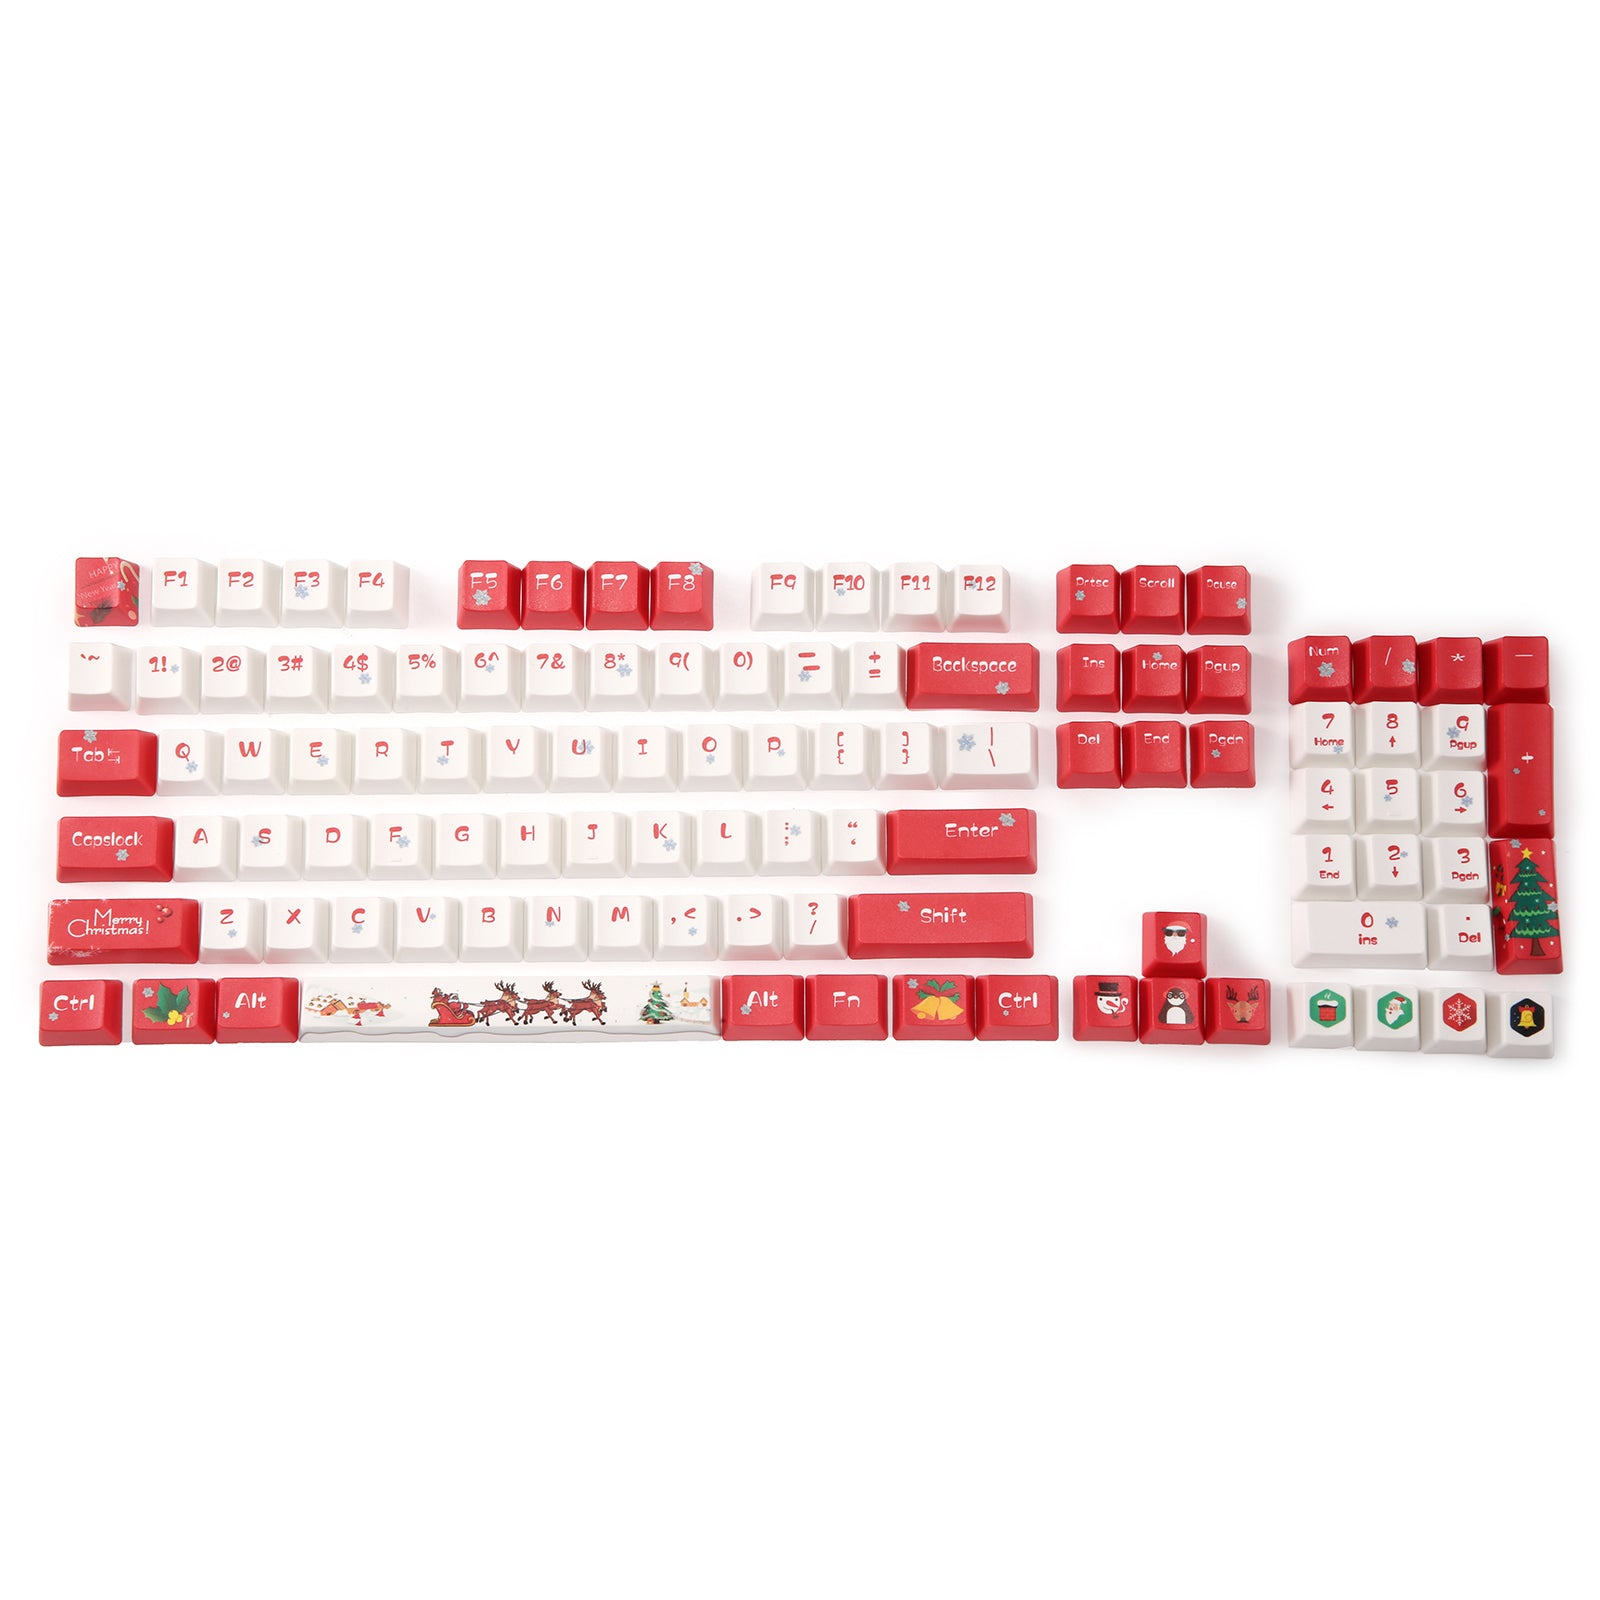 Redragon Thick PBT Keycaps for Mechanical Keyboard